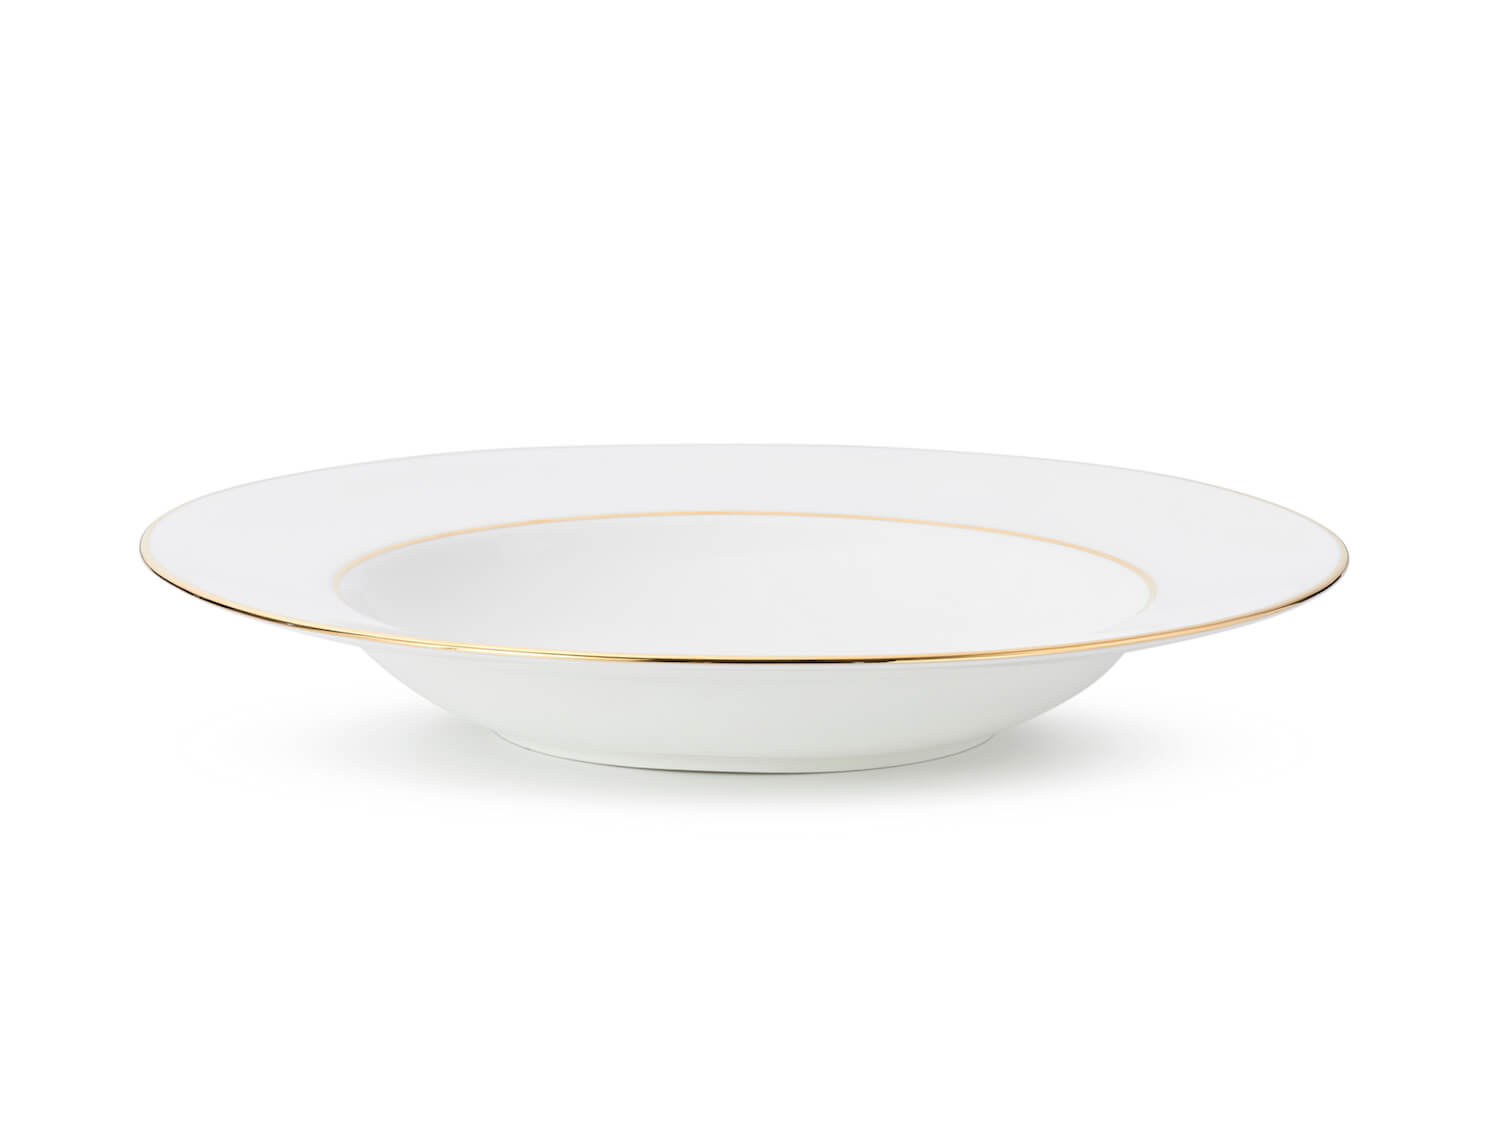 J.W Krogman The Allingham Gold Tableware Collection – Set Of 6 Soup Plates In Fine Bone China